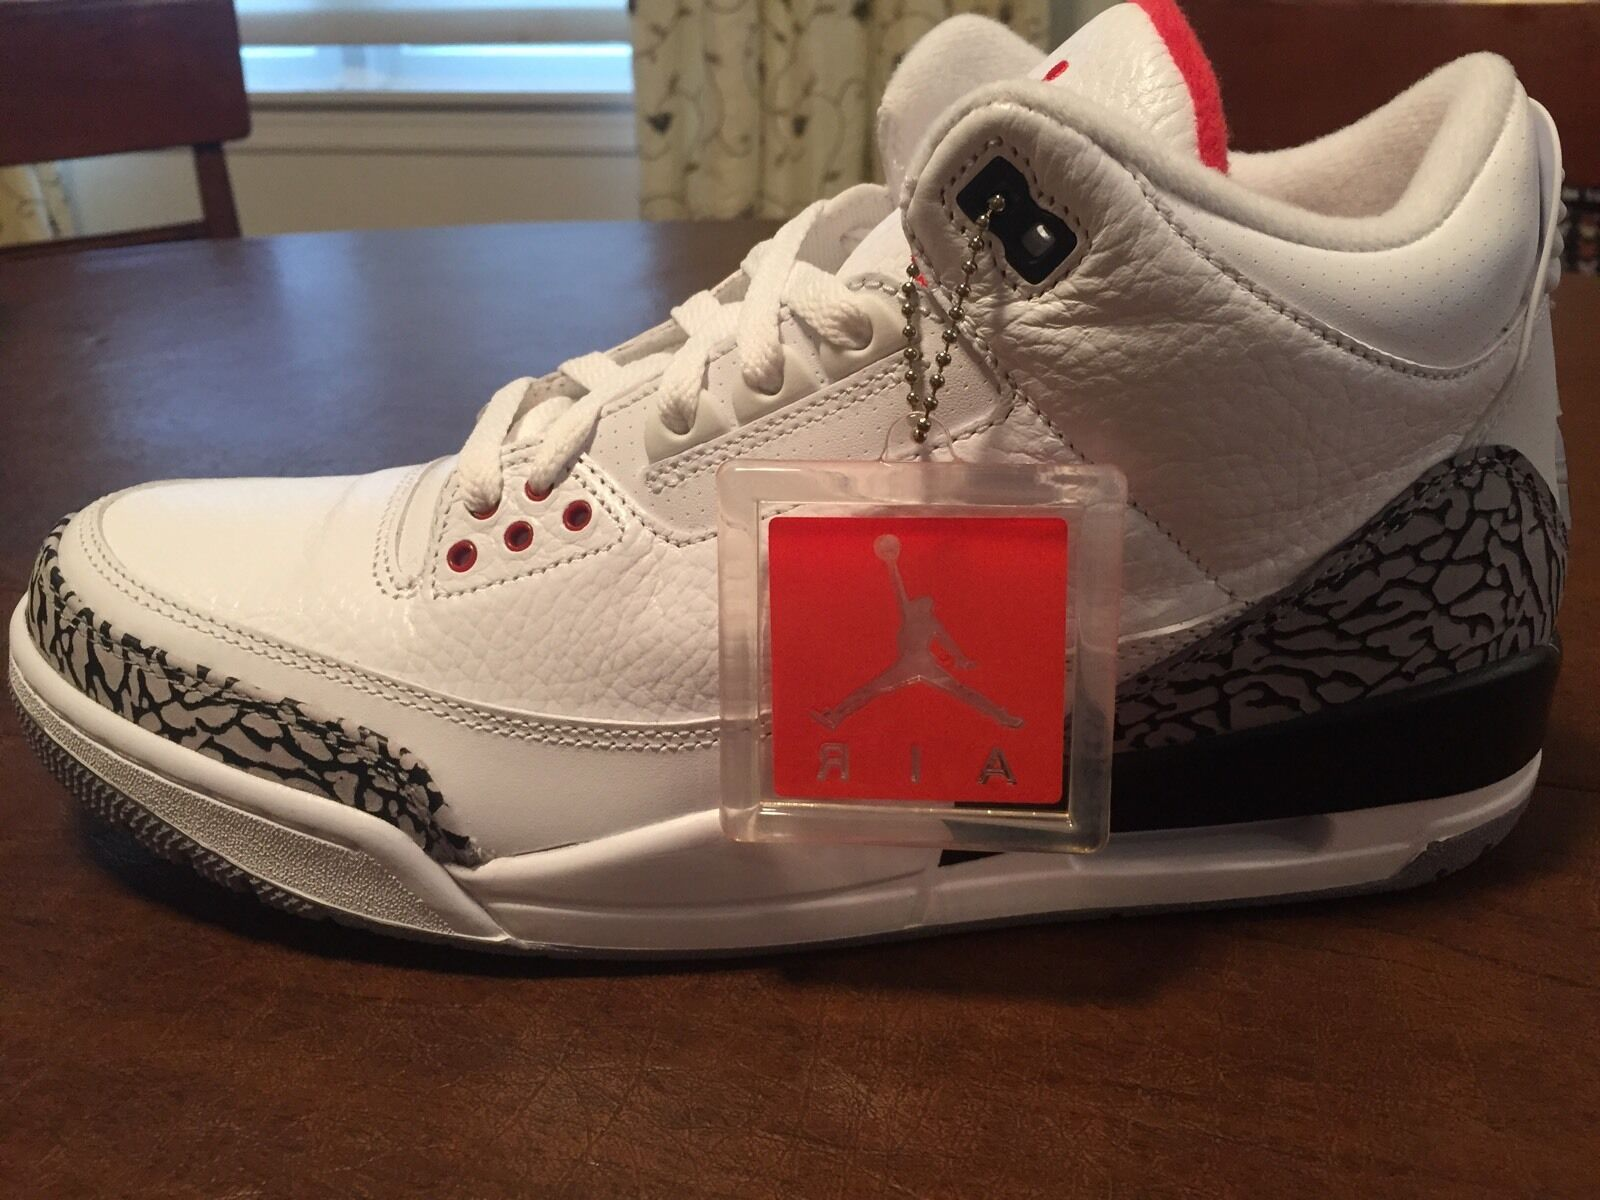 2011 Nike Air Jordan Retro III 3 White Cement 136064-105- DEADSTOCK Size 11